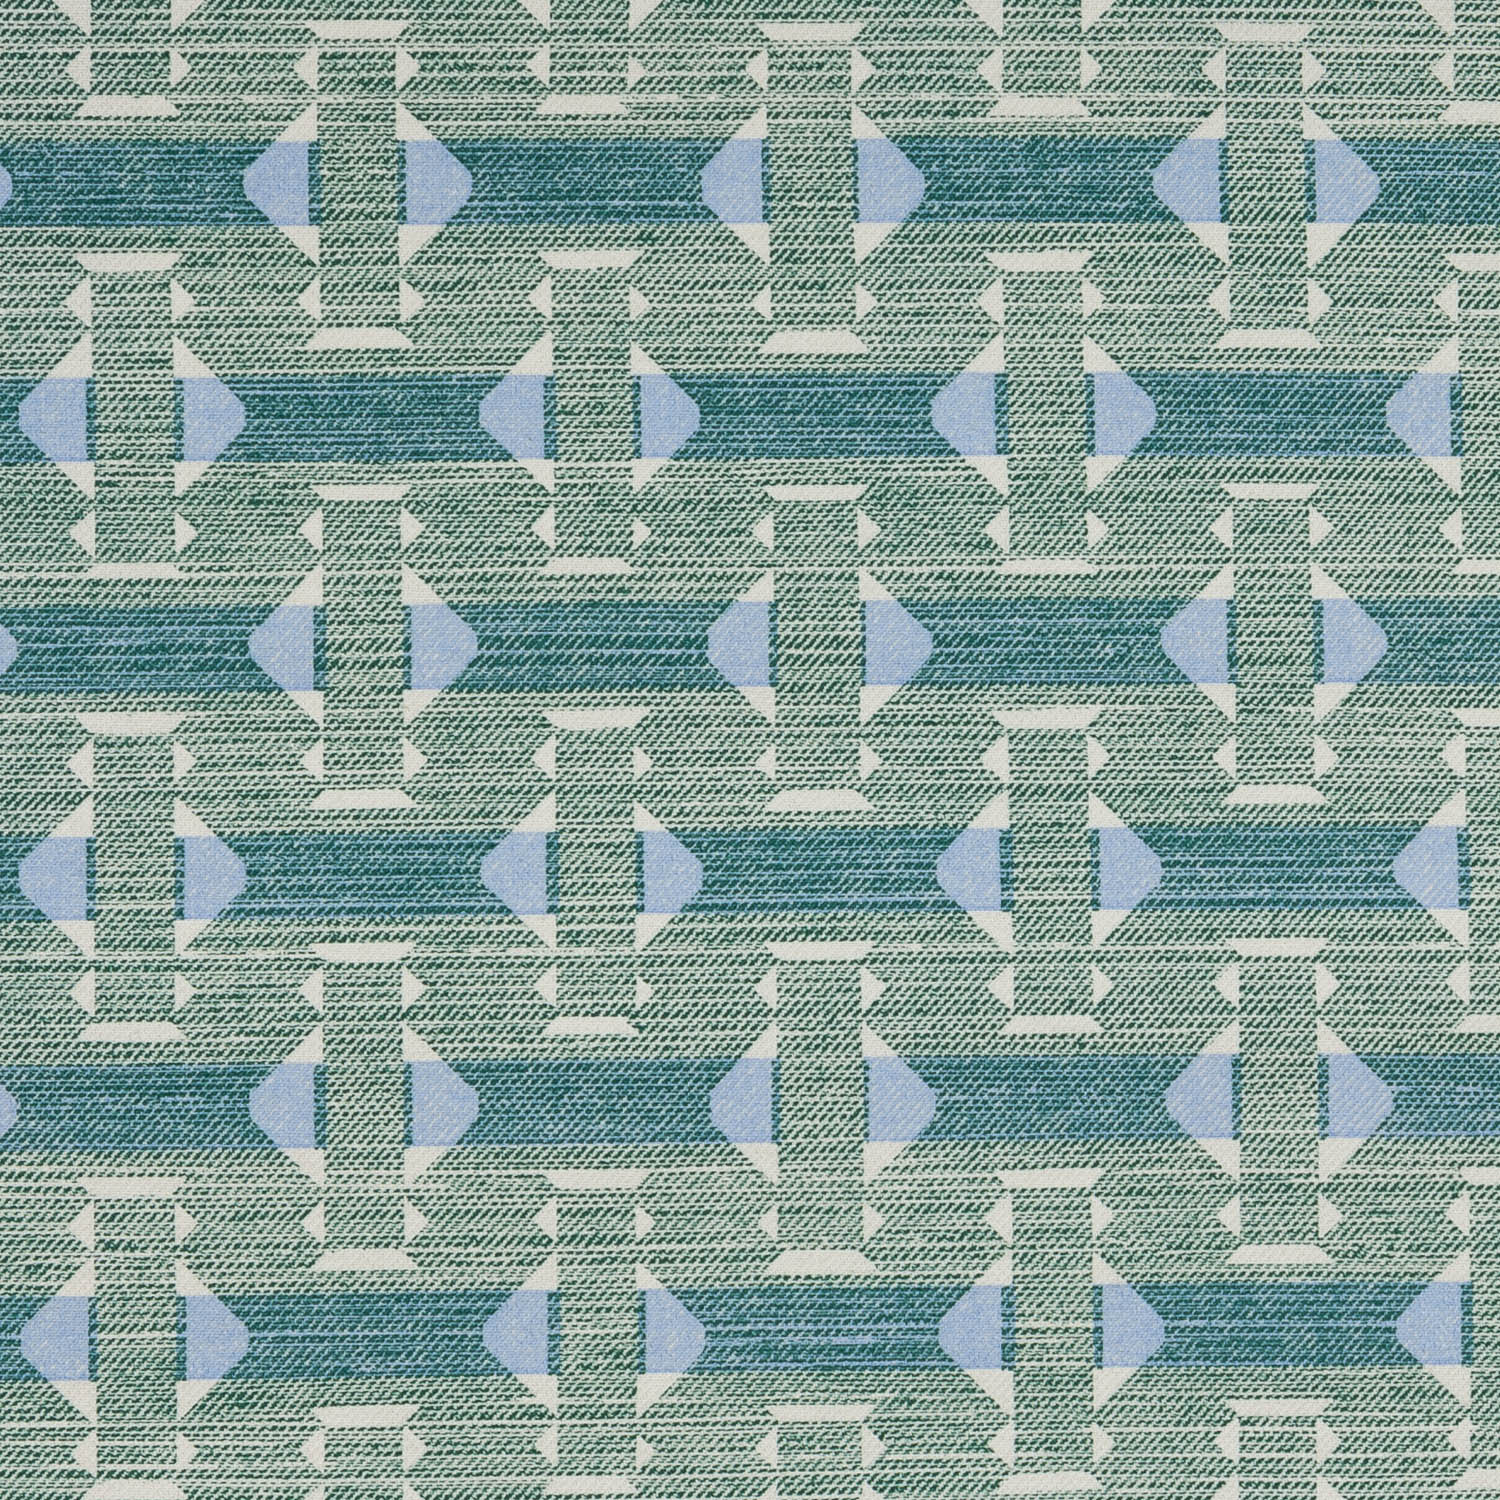 sici-003-green-sicily-cotton-1